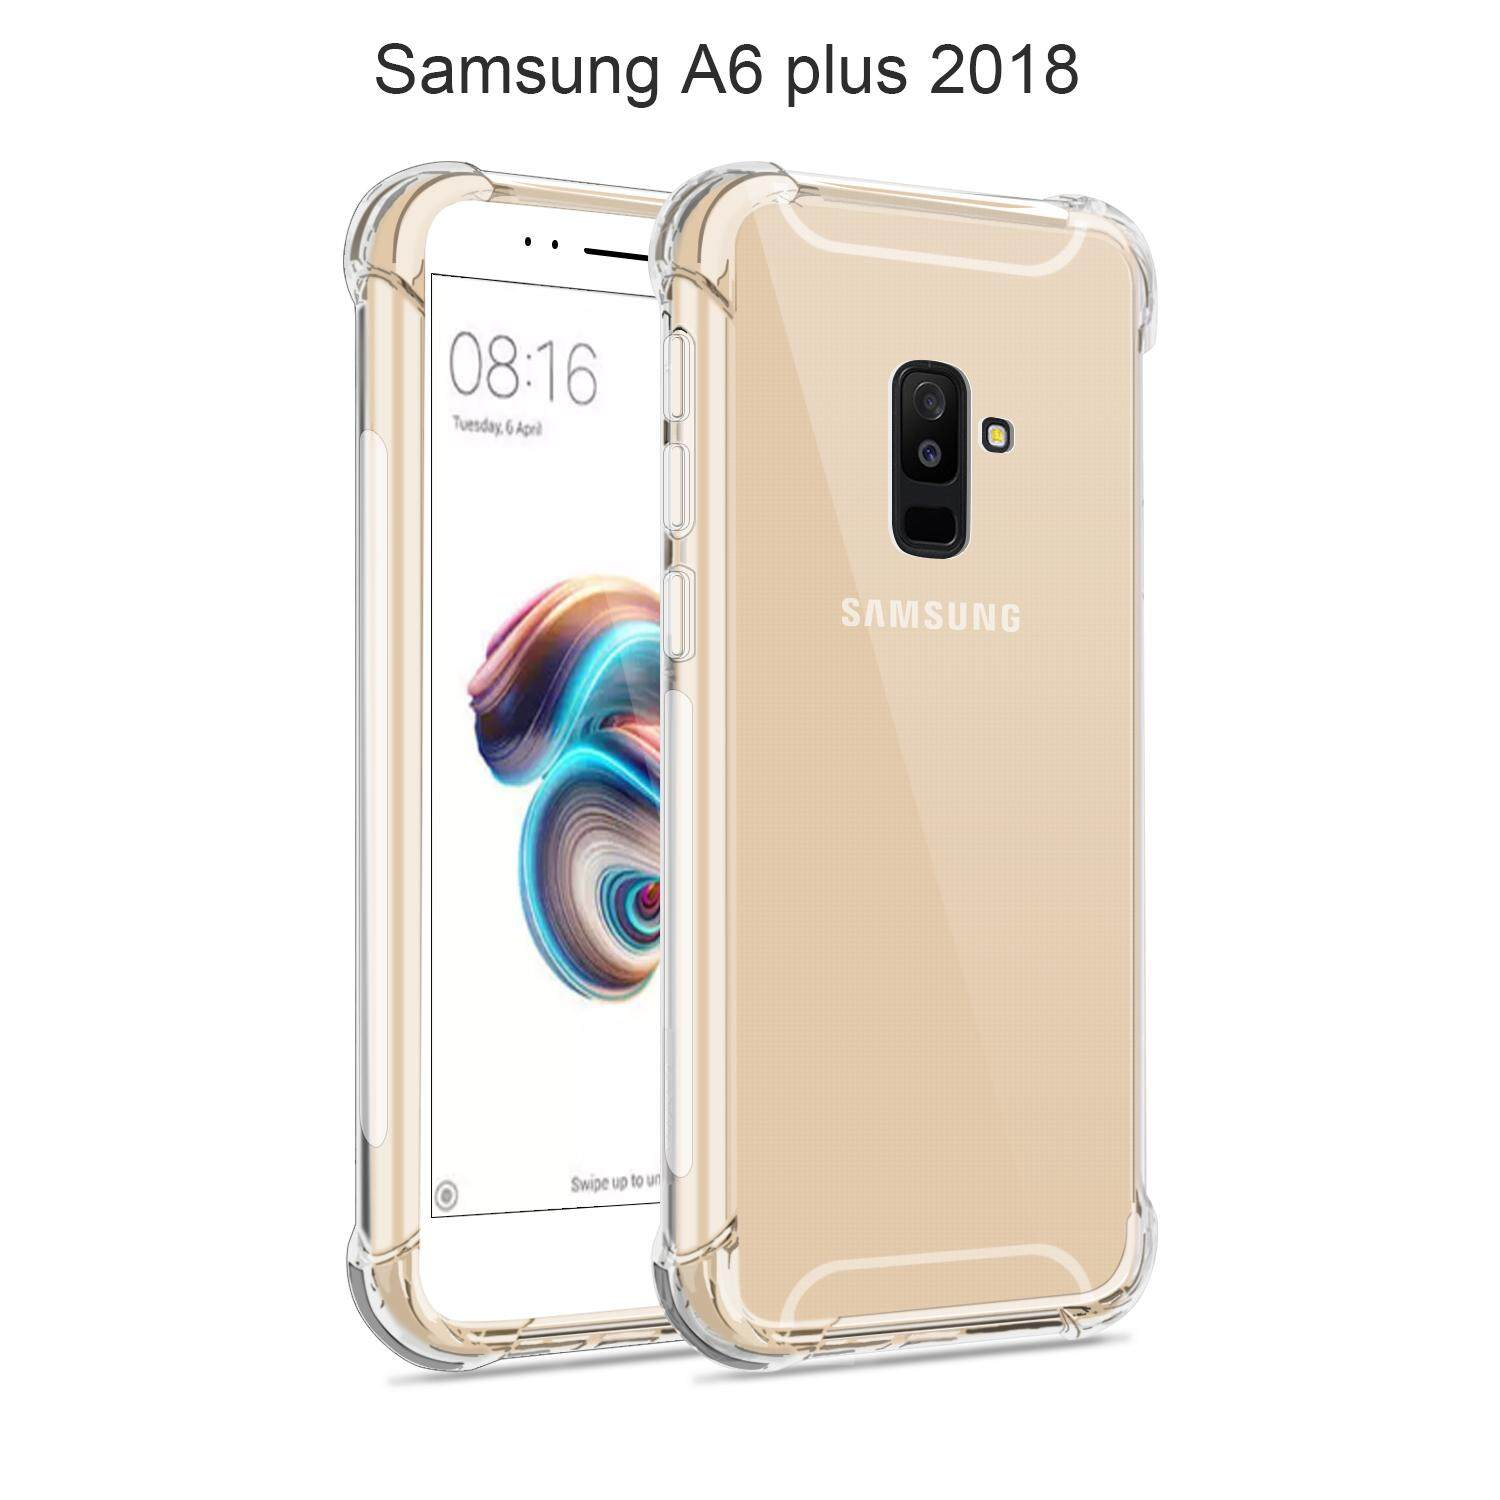 LASTMA Rugger Crystal Galaxy A6 Plus 2018 Case with Air Cushion Technology and Anti Scratch